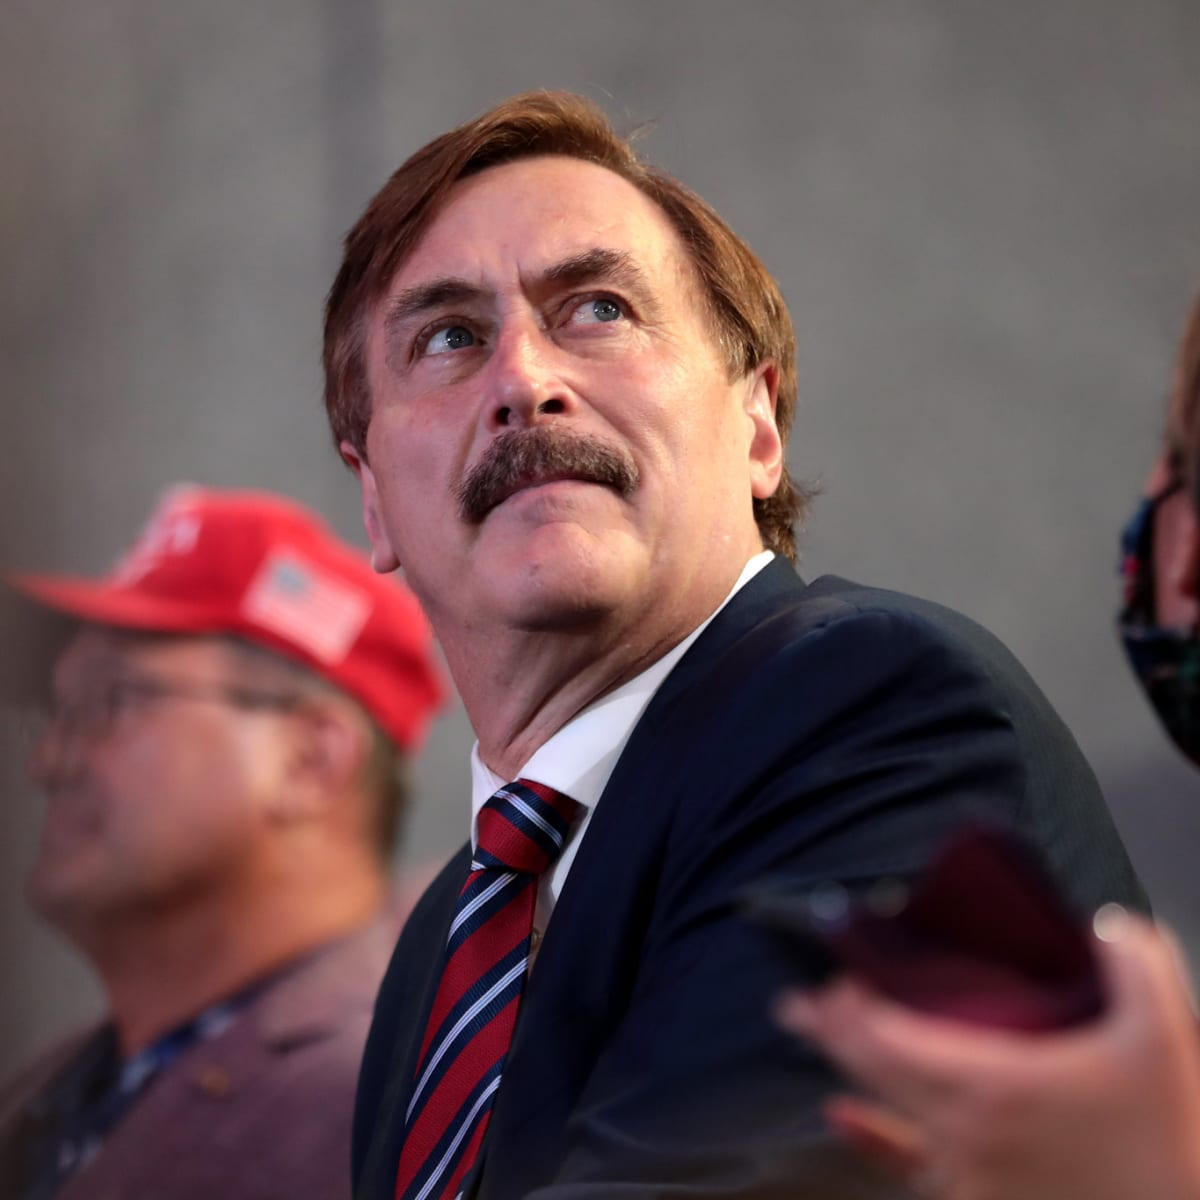 My Pillow Guy Calls On Trump To Impose Martial Law In Minnesota Bring Me The News